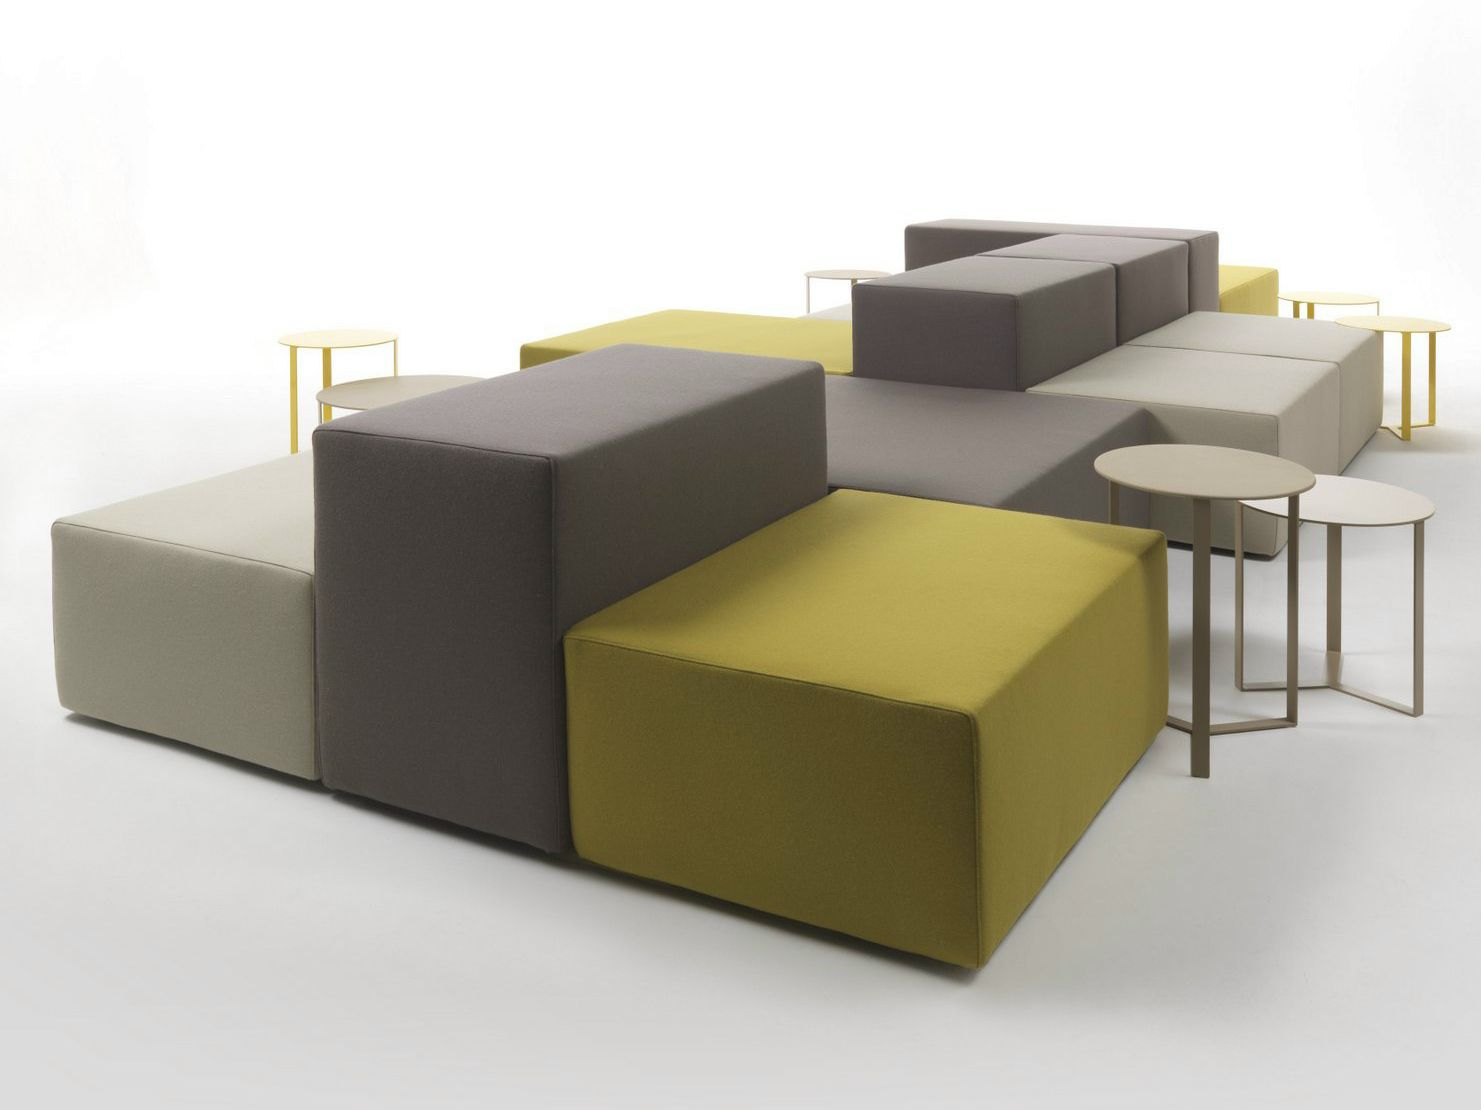 Bureau Composable Canapé Composable Modulable Lounge Collection Lounge By